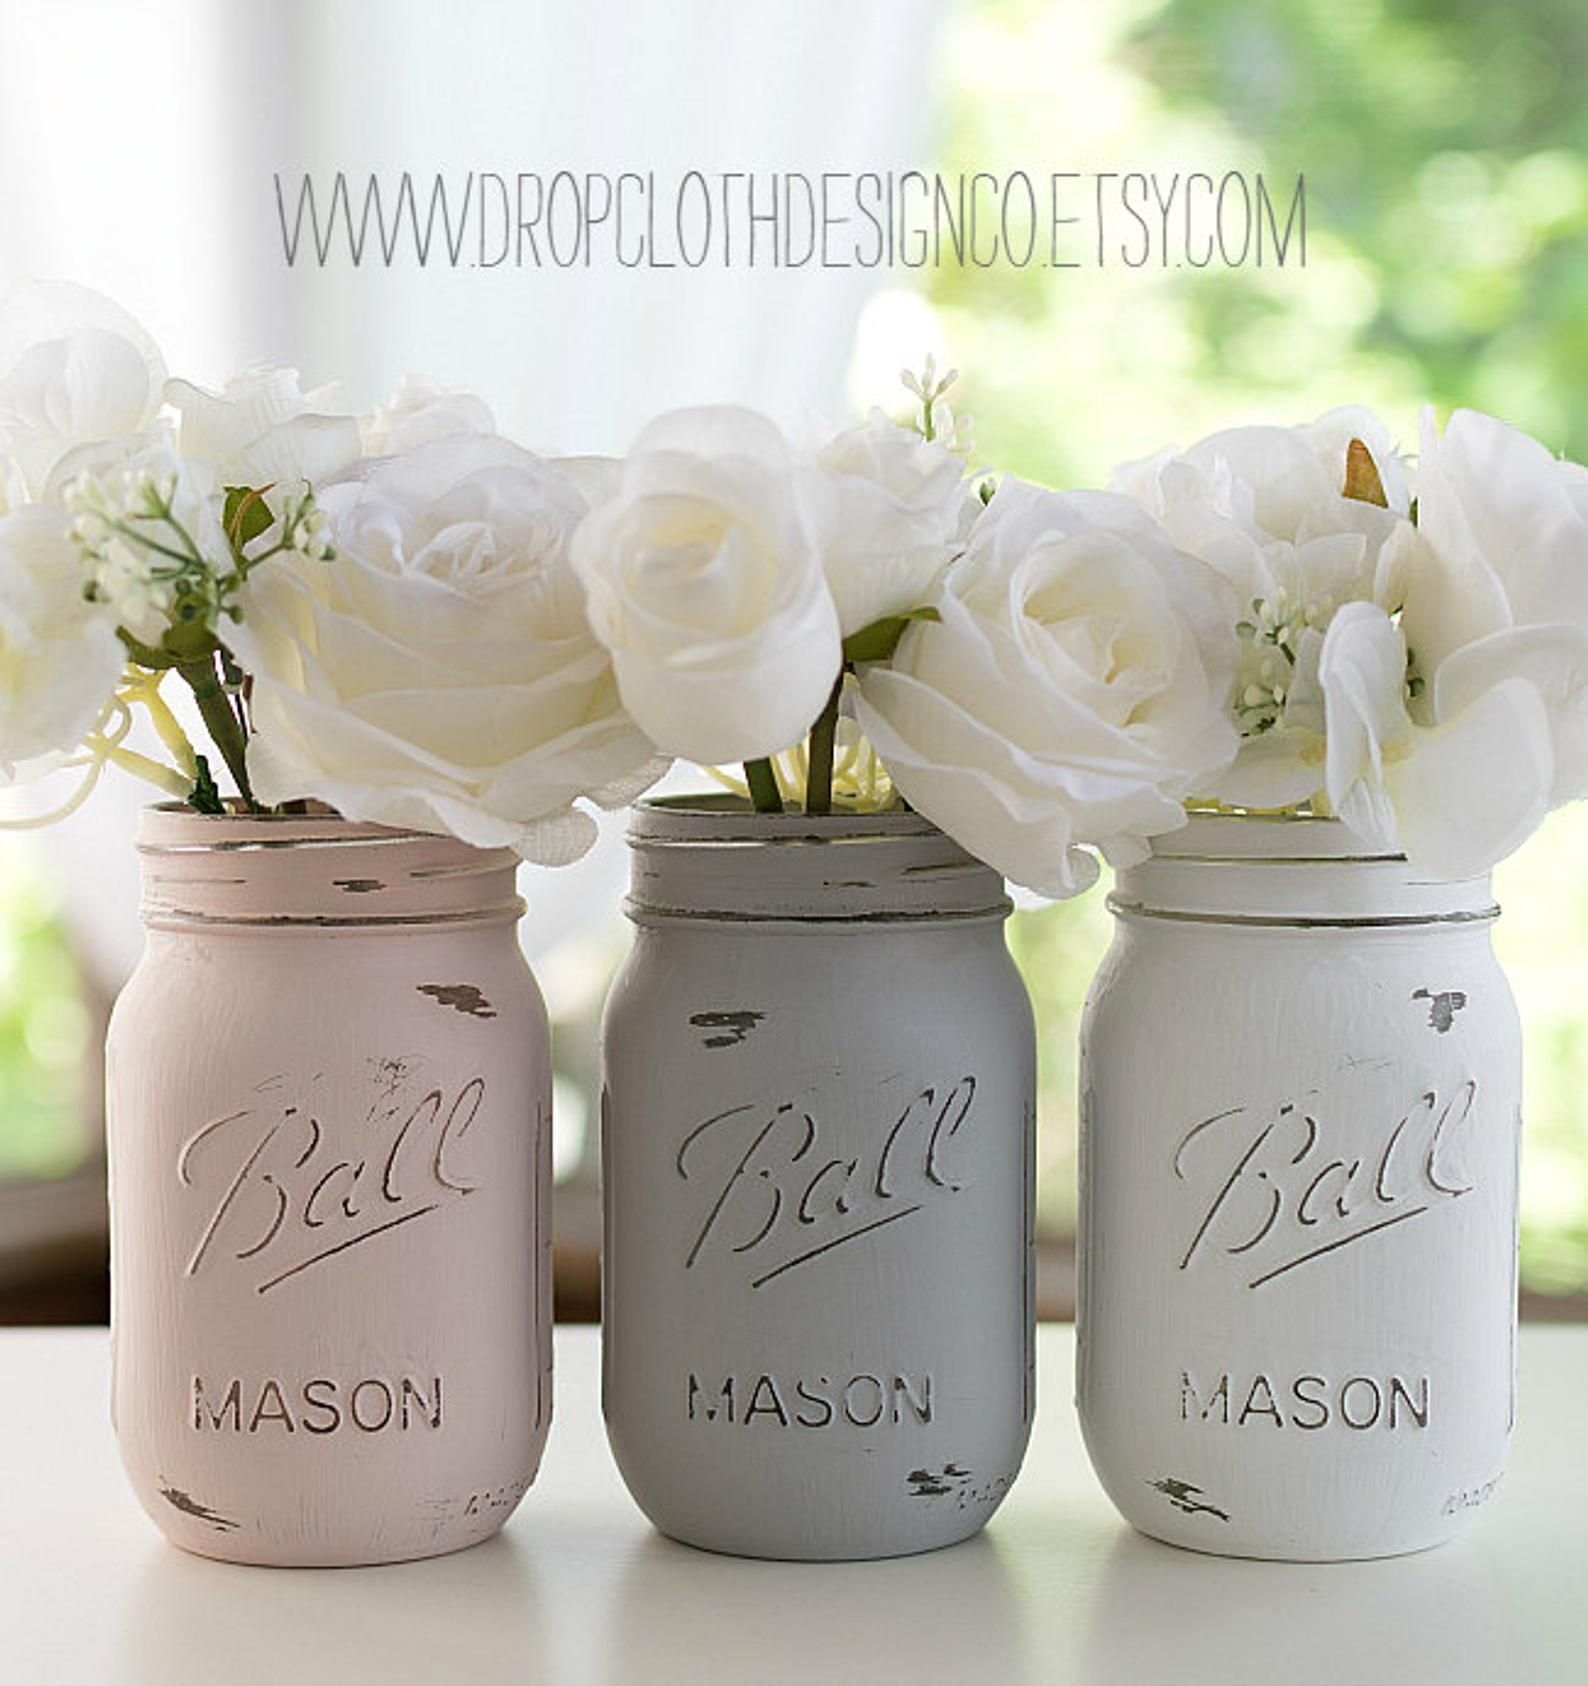 Pink, Gray, White Painted Mason Jars – Weddings, Showers, Parties, Home Decor – Set of 3